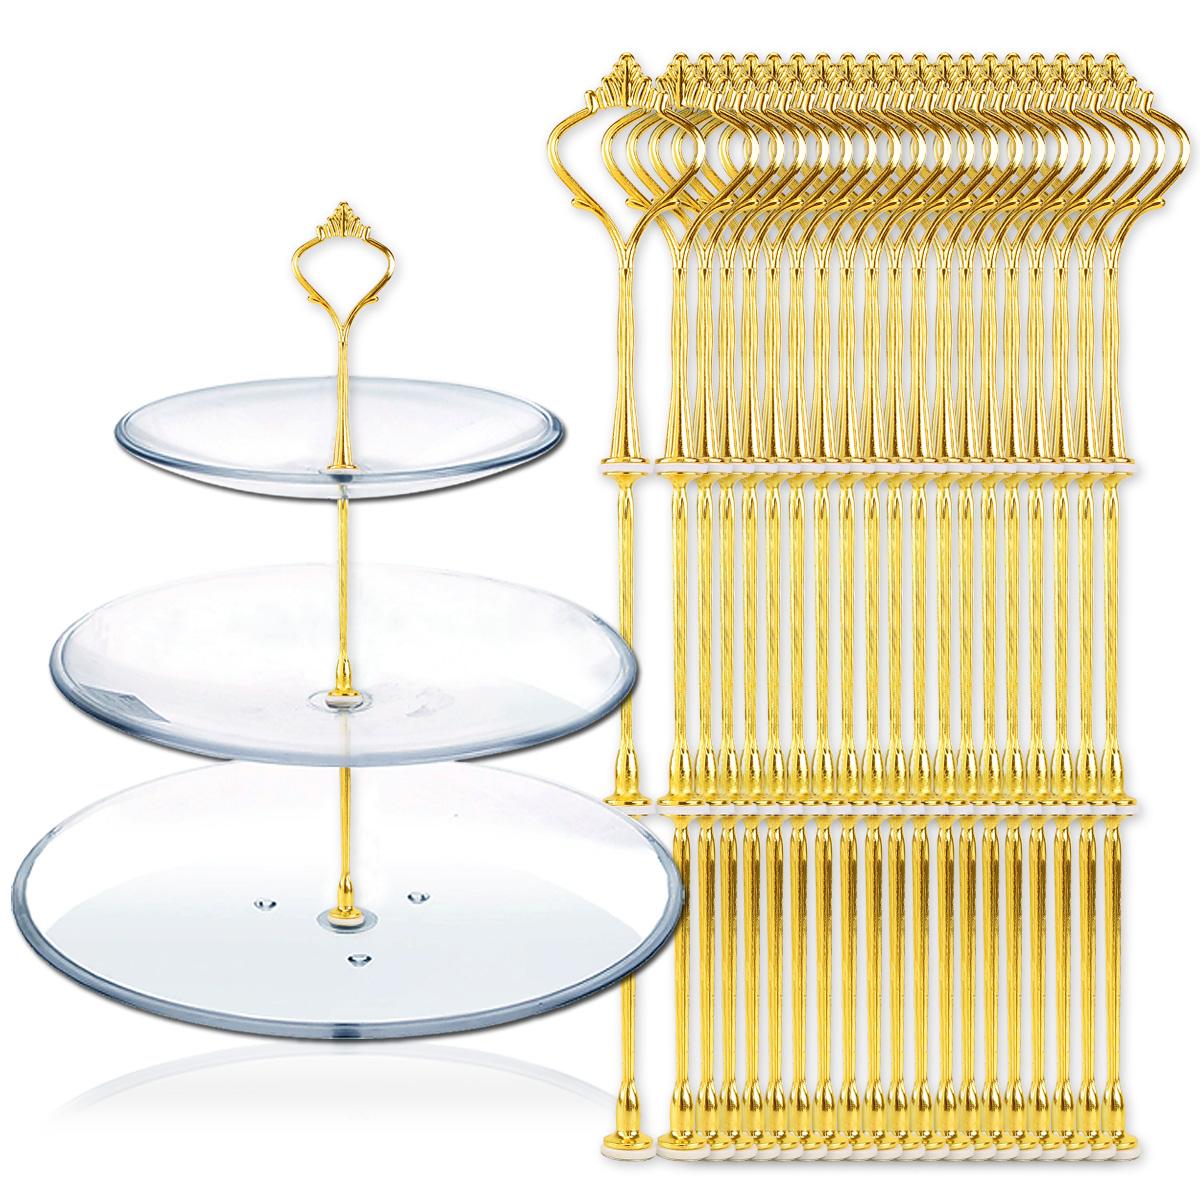 20pcs 3 tier vintage crown wedding cake plate tiered stand for Plate cake stand diy